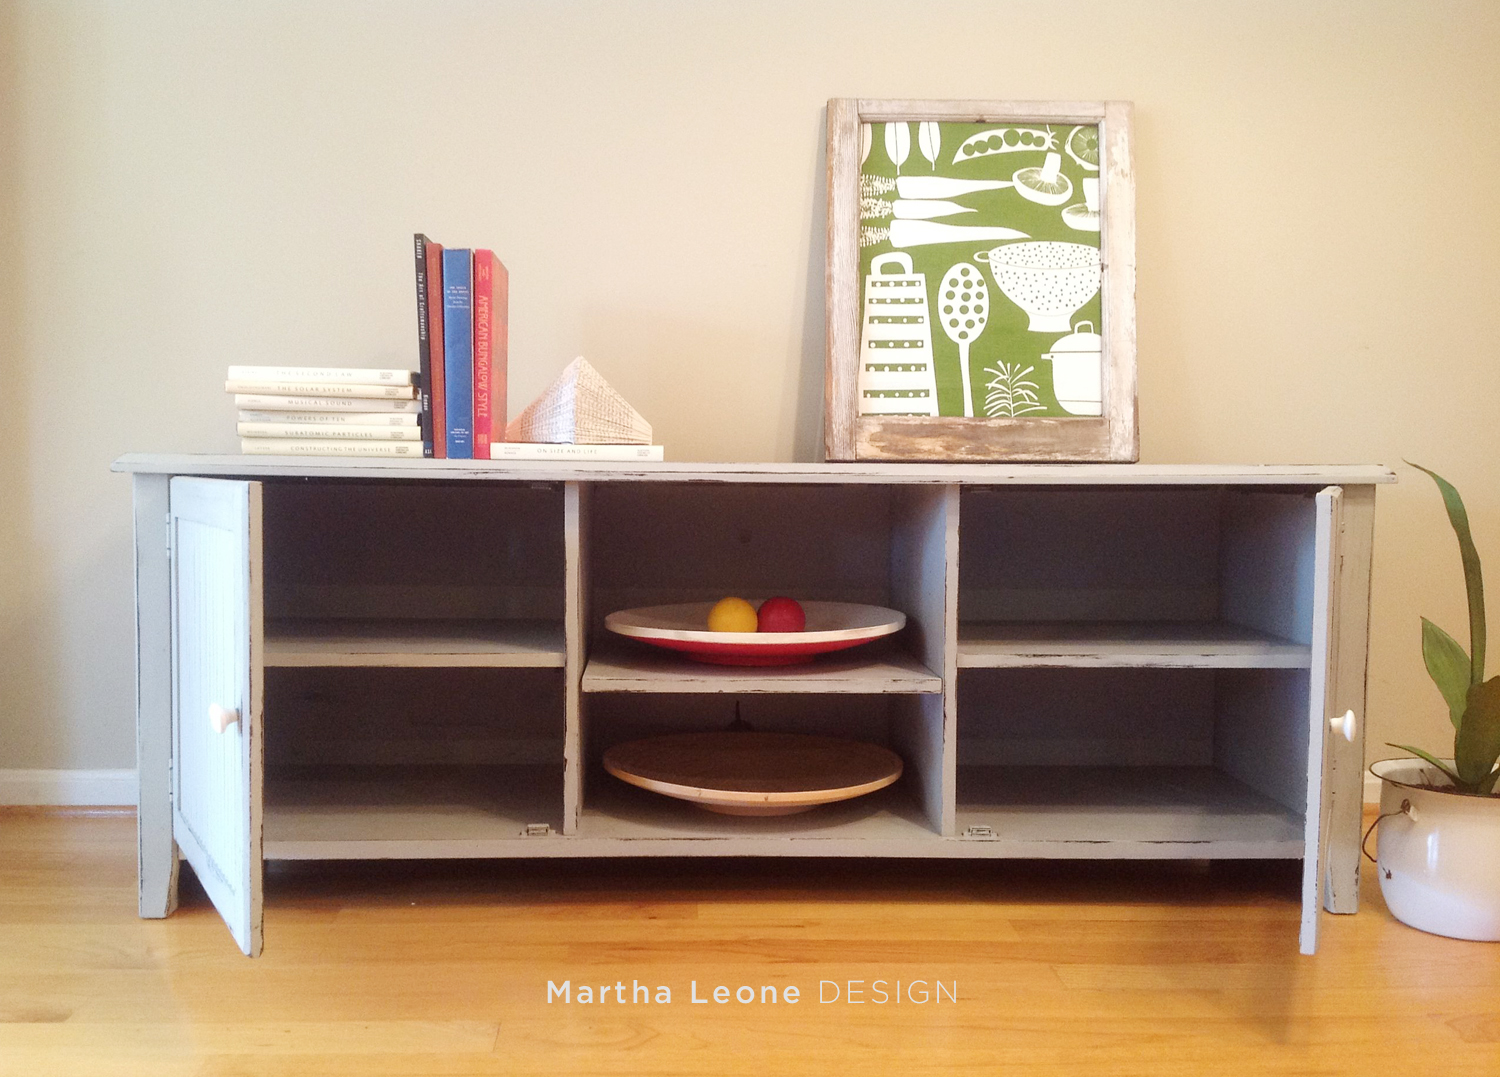 TV Console MarthaLeoneDesign4